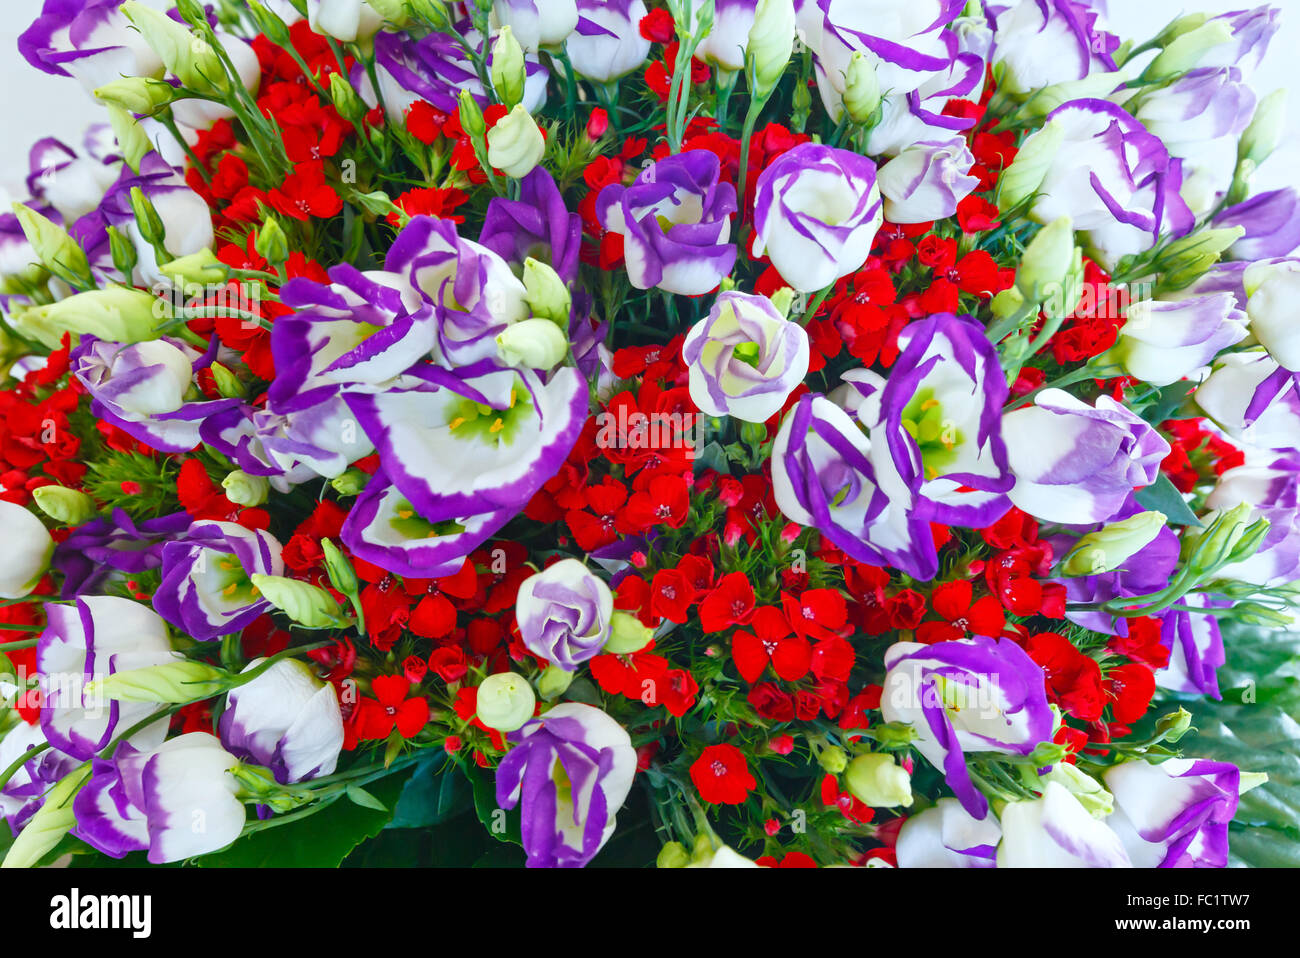 Big wonderful flowers bouquet stock photo 93469187 alamy big wonderful flowers bouquet izmirmasajfo